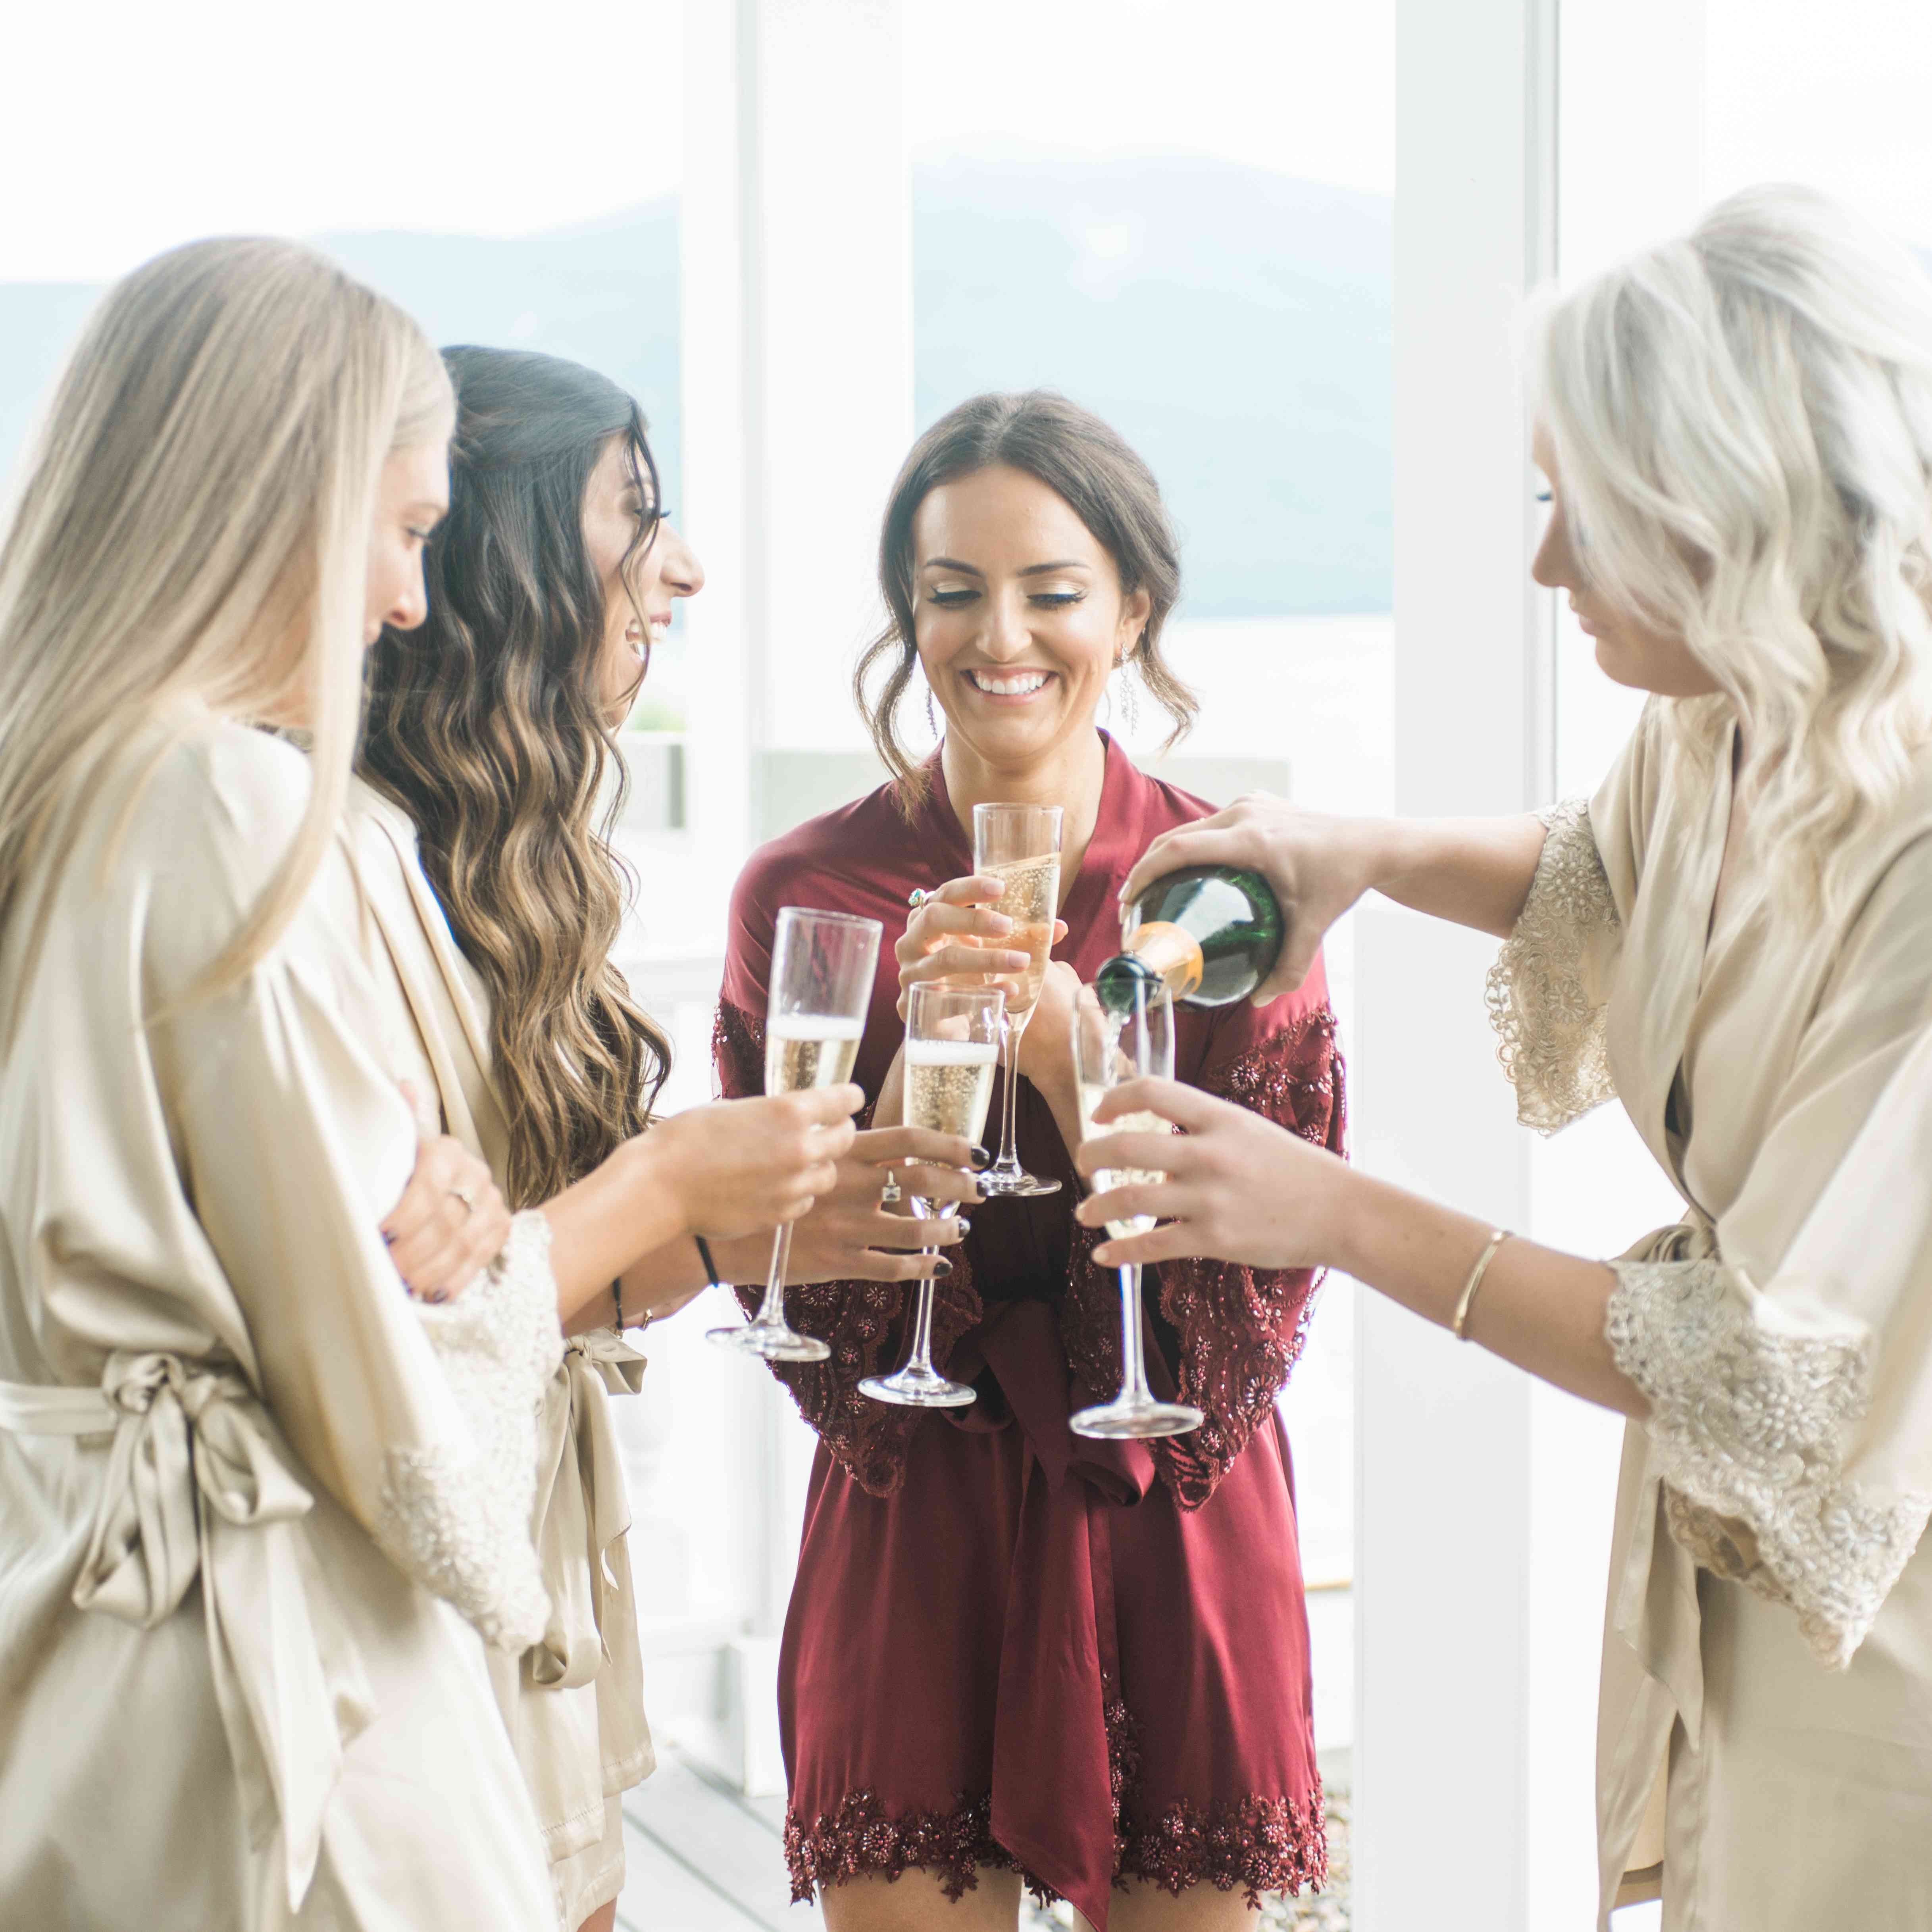 Bridal shower with champagne